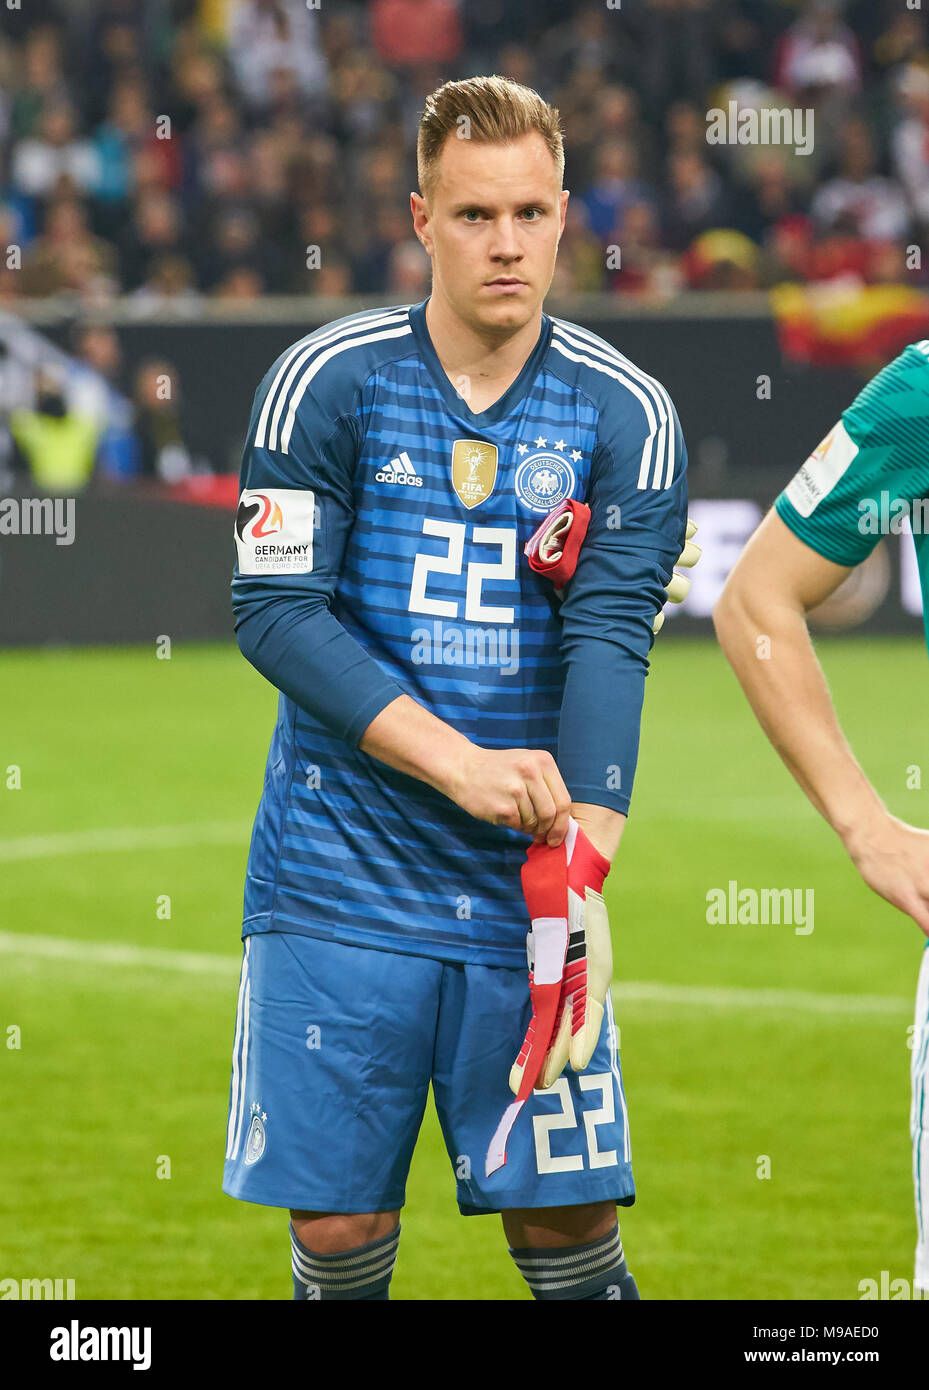 86c8d01a9 Marc Andre Ter Stegen Germany 2017 Stock Photos   Marc Andre Ter ...